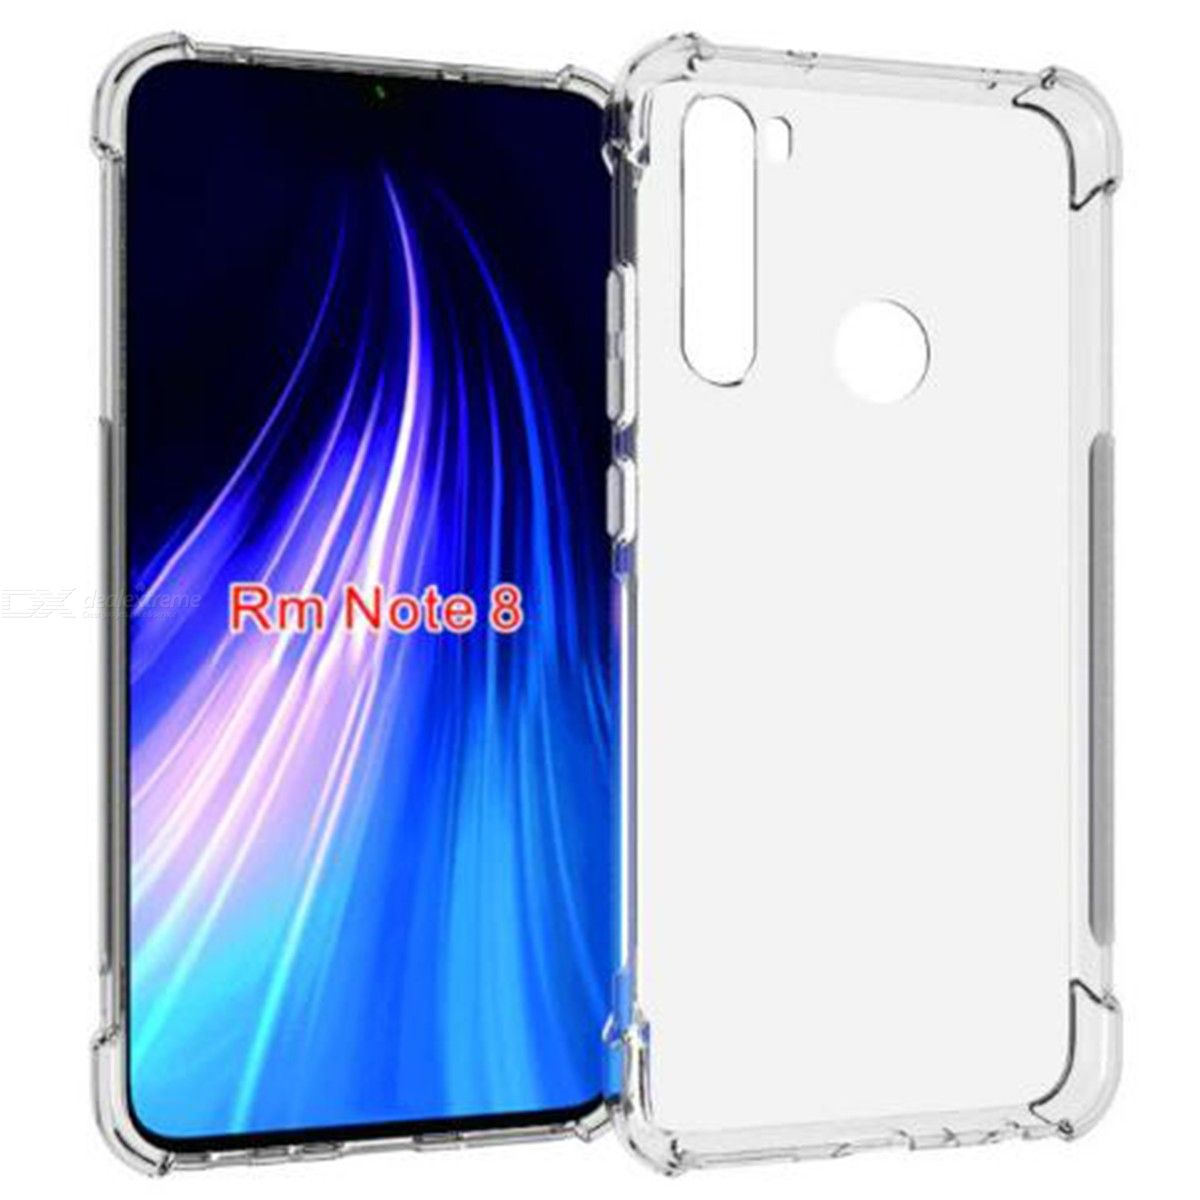 ASLING Four-corner Airbag Phone Case Protective Shell for Xiaomi Redmi Note 8